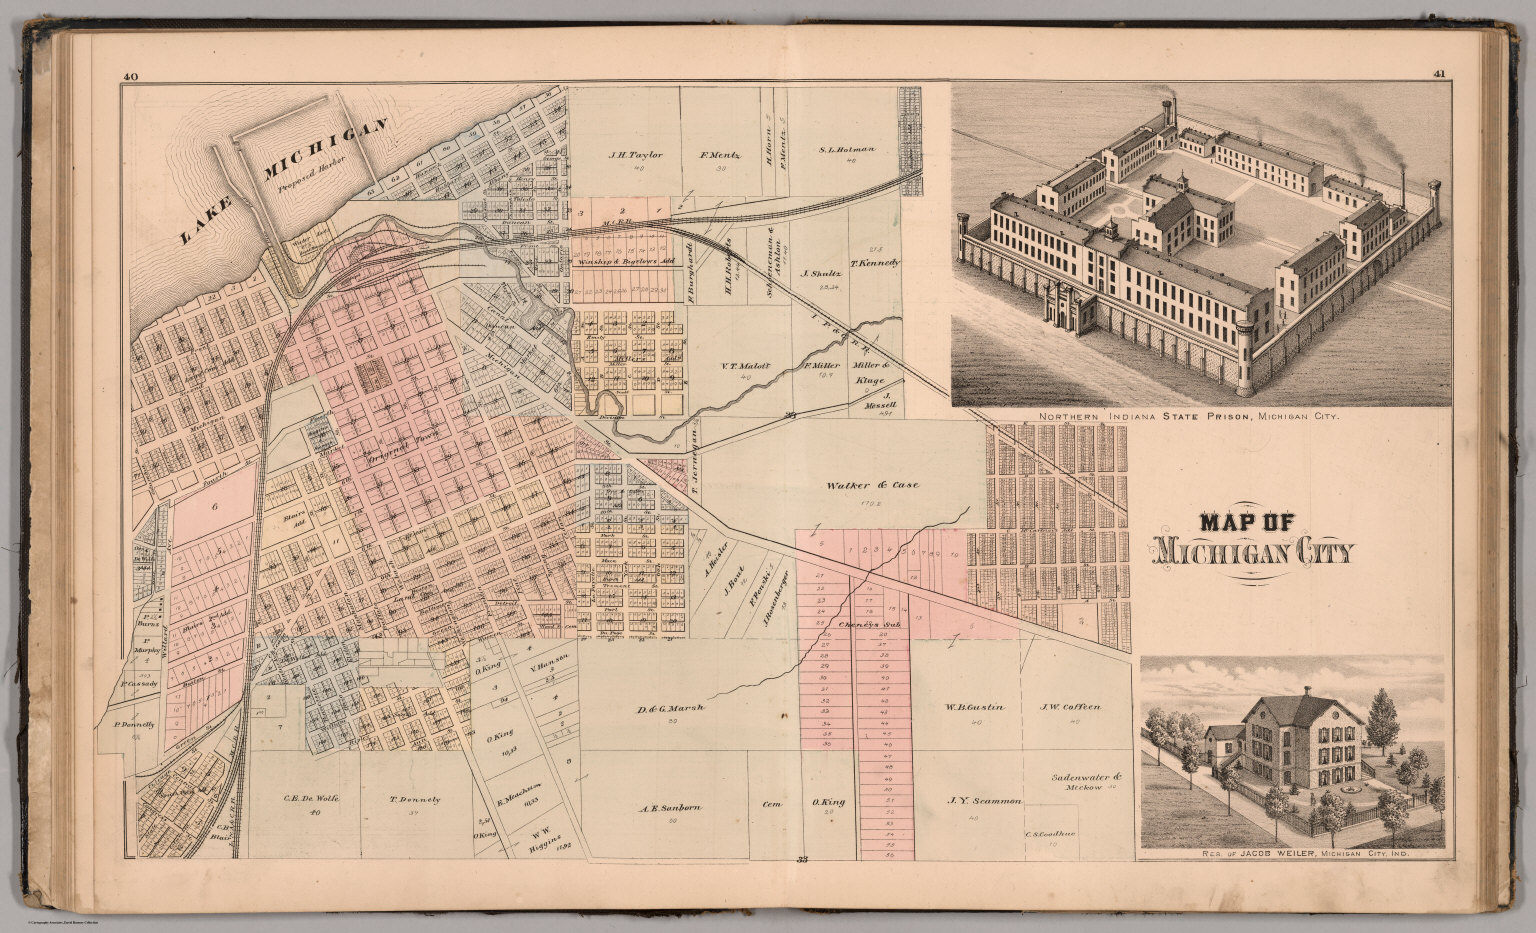 Map Of Michigan City View State Prison Residence Of Jacob Weiler